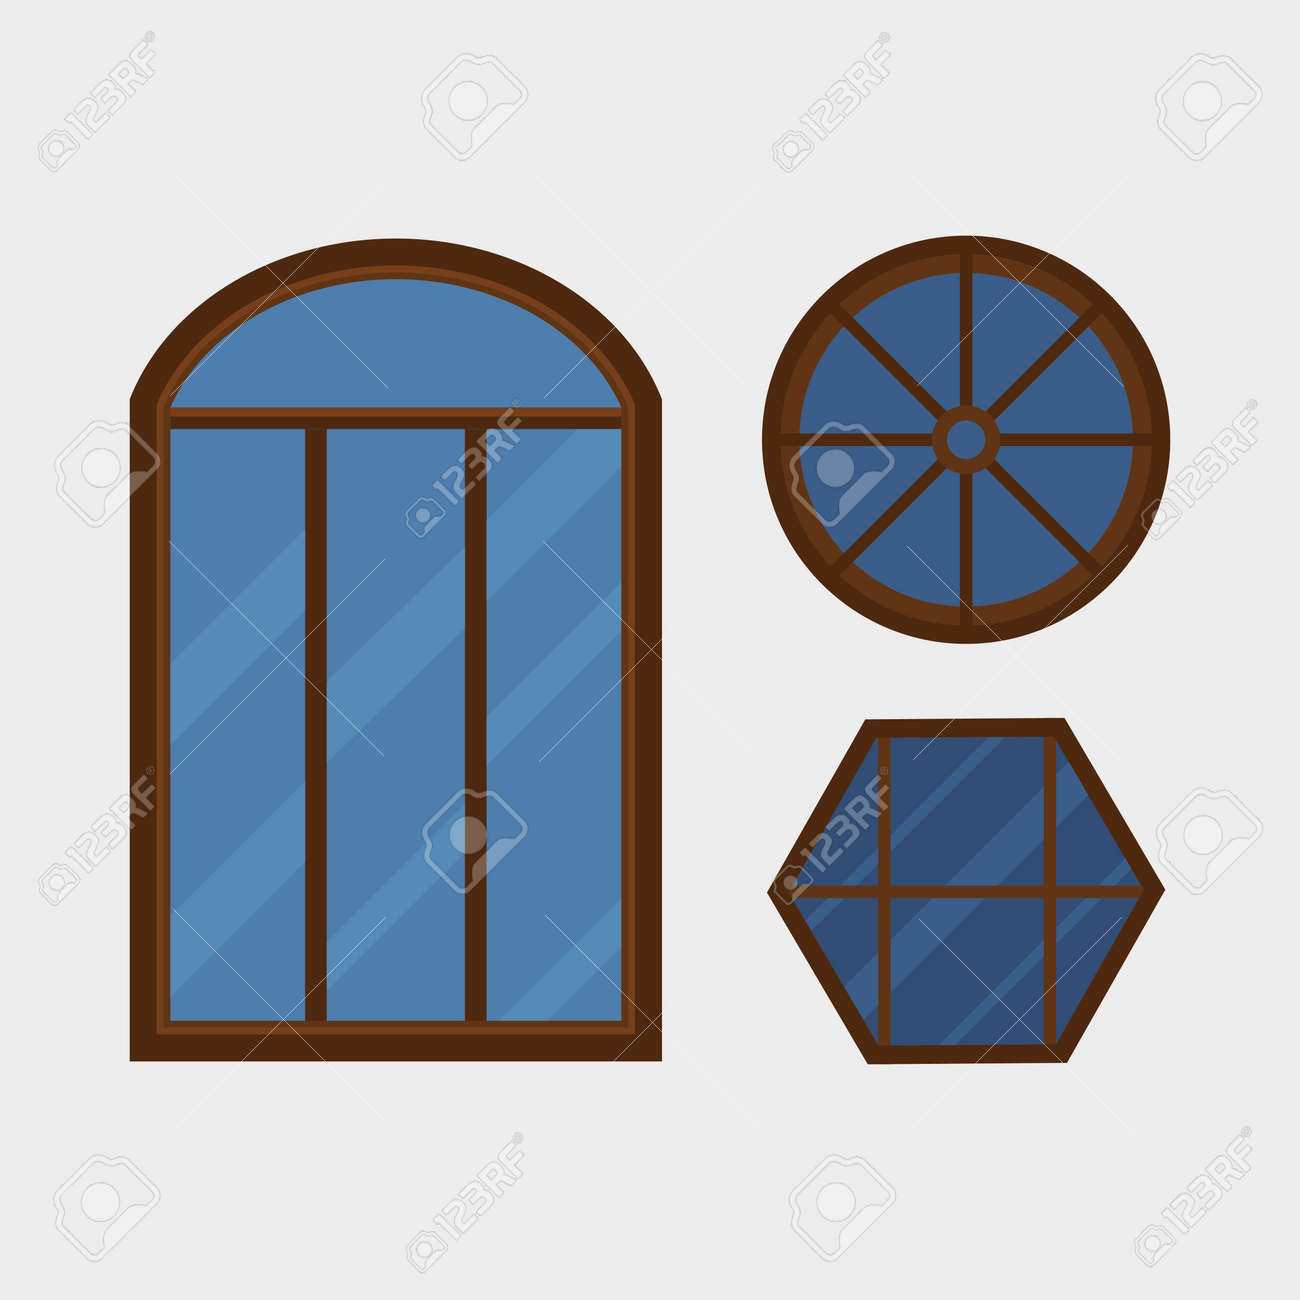 Type Of House Windows Element Isolated Flat Style Frame Domestic. Type Of House Windows Element Isolated Flat Style Frame Domestic Door Double Construction And Contemporary Decoration. Wiring. House Frame Diagram Doors At Scoala.co